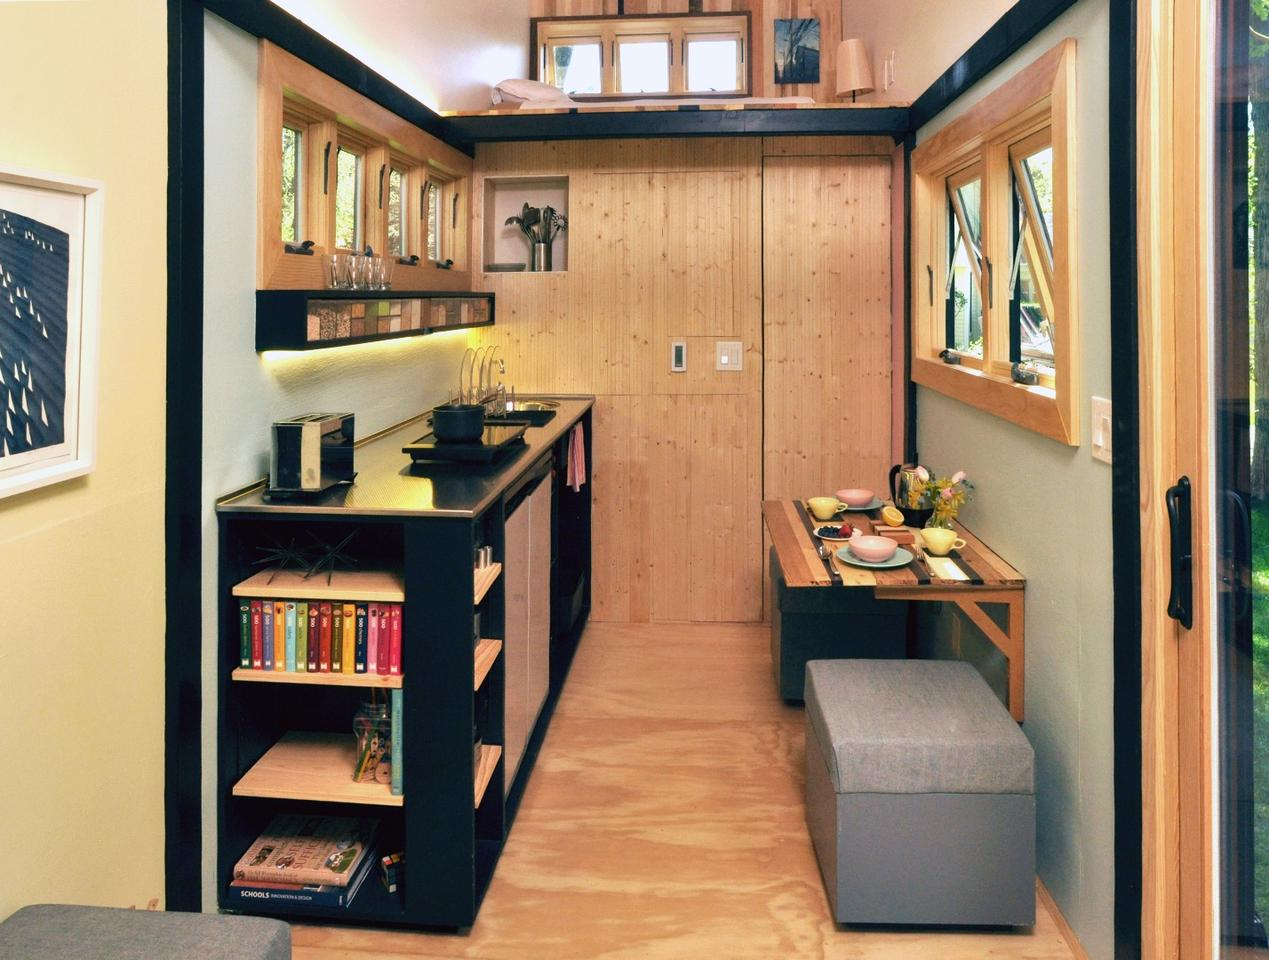 Frank Henderson and Paul Schultz's recently-completed Toybox Tiny Home stands out from the crowd with its well-designed interior